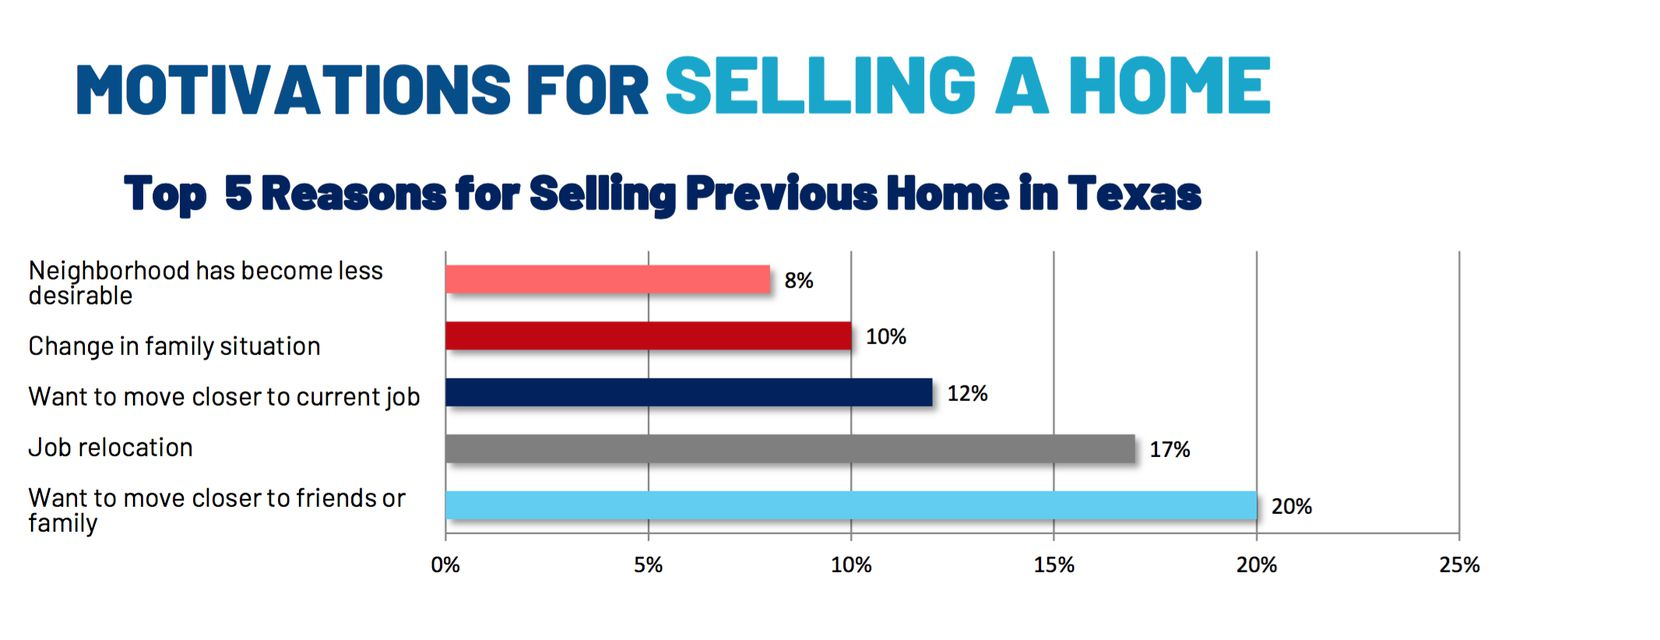 Job relocations are a big motivation for sellers.